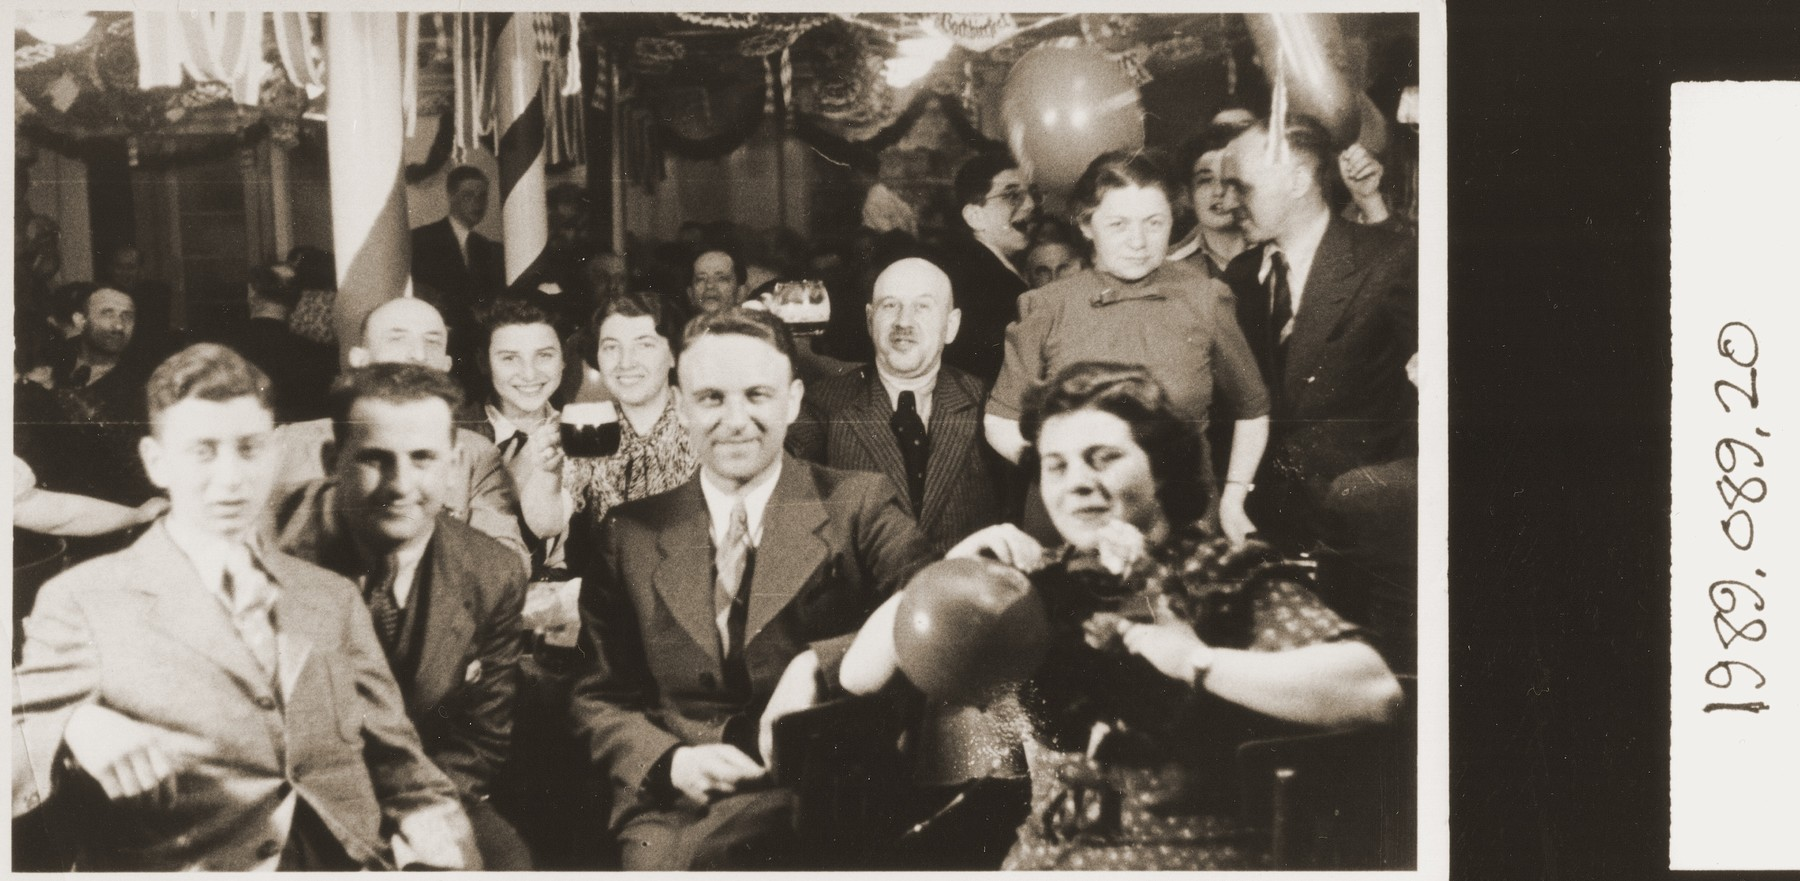 A party on board the SS St. Louis.